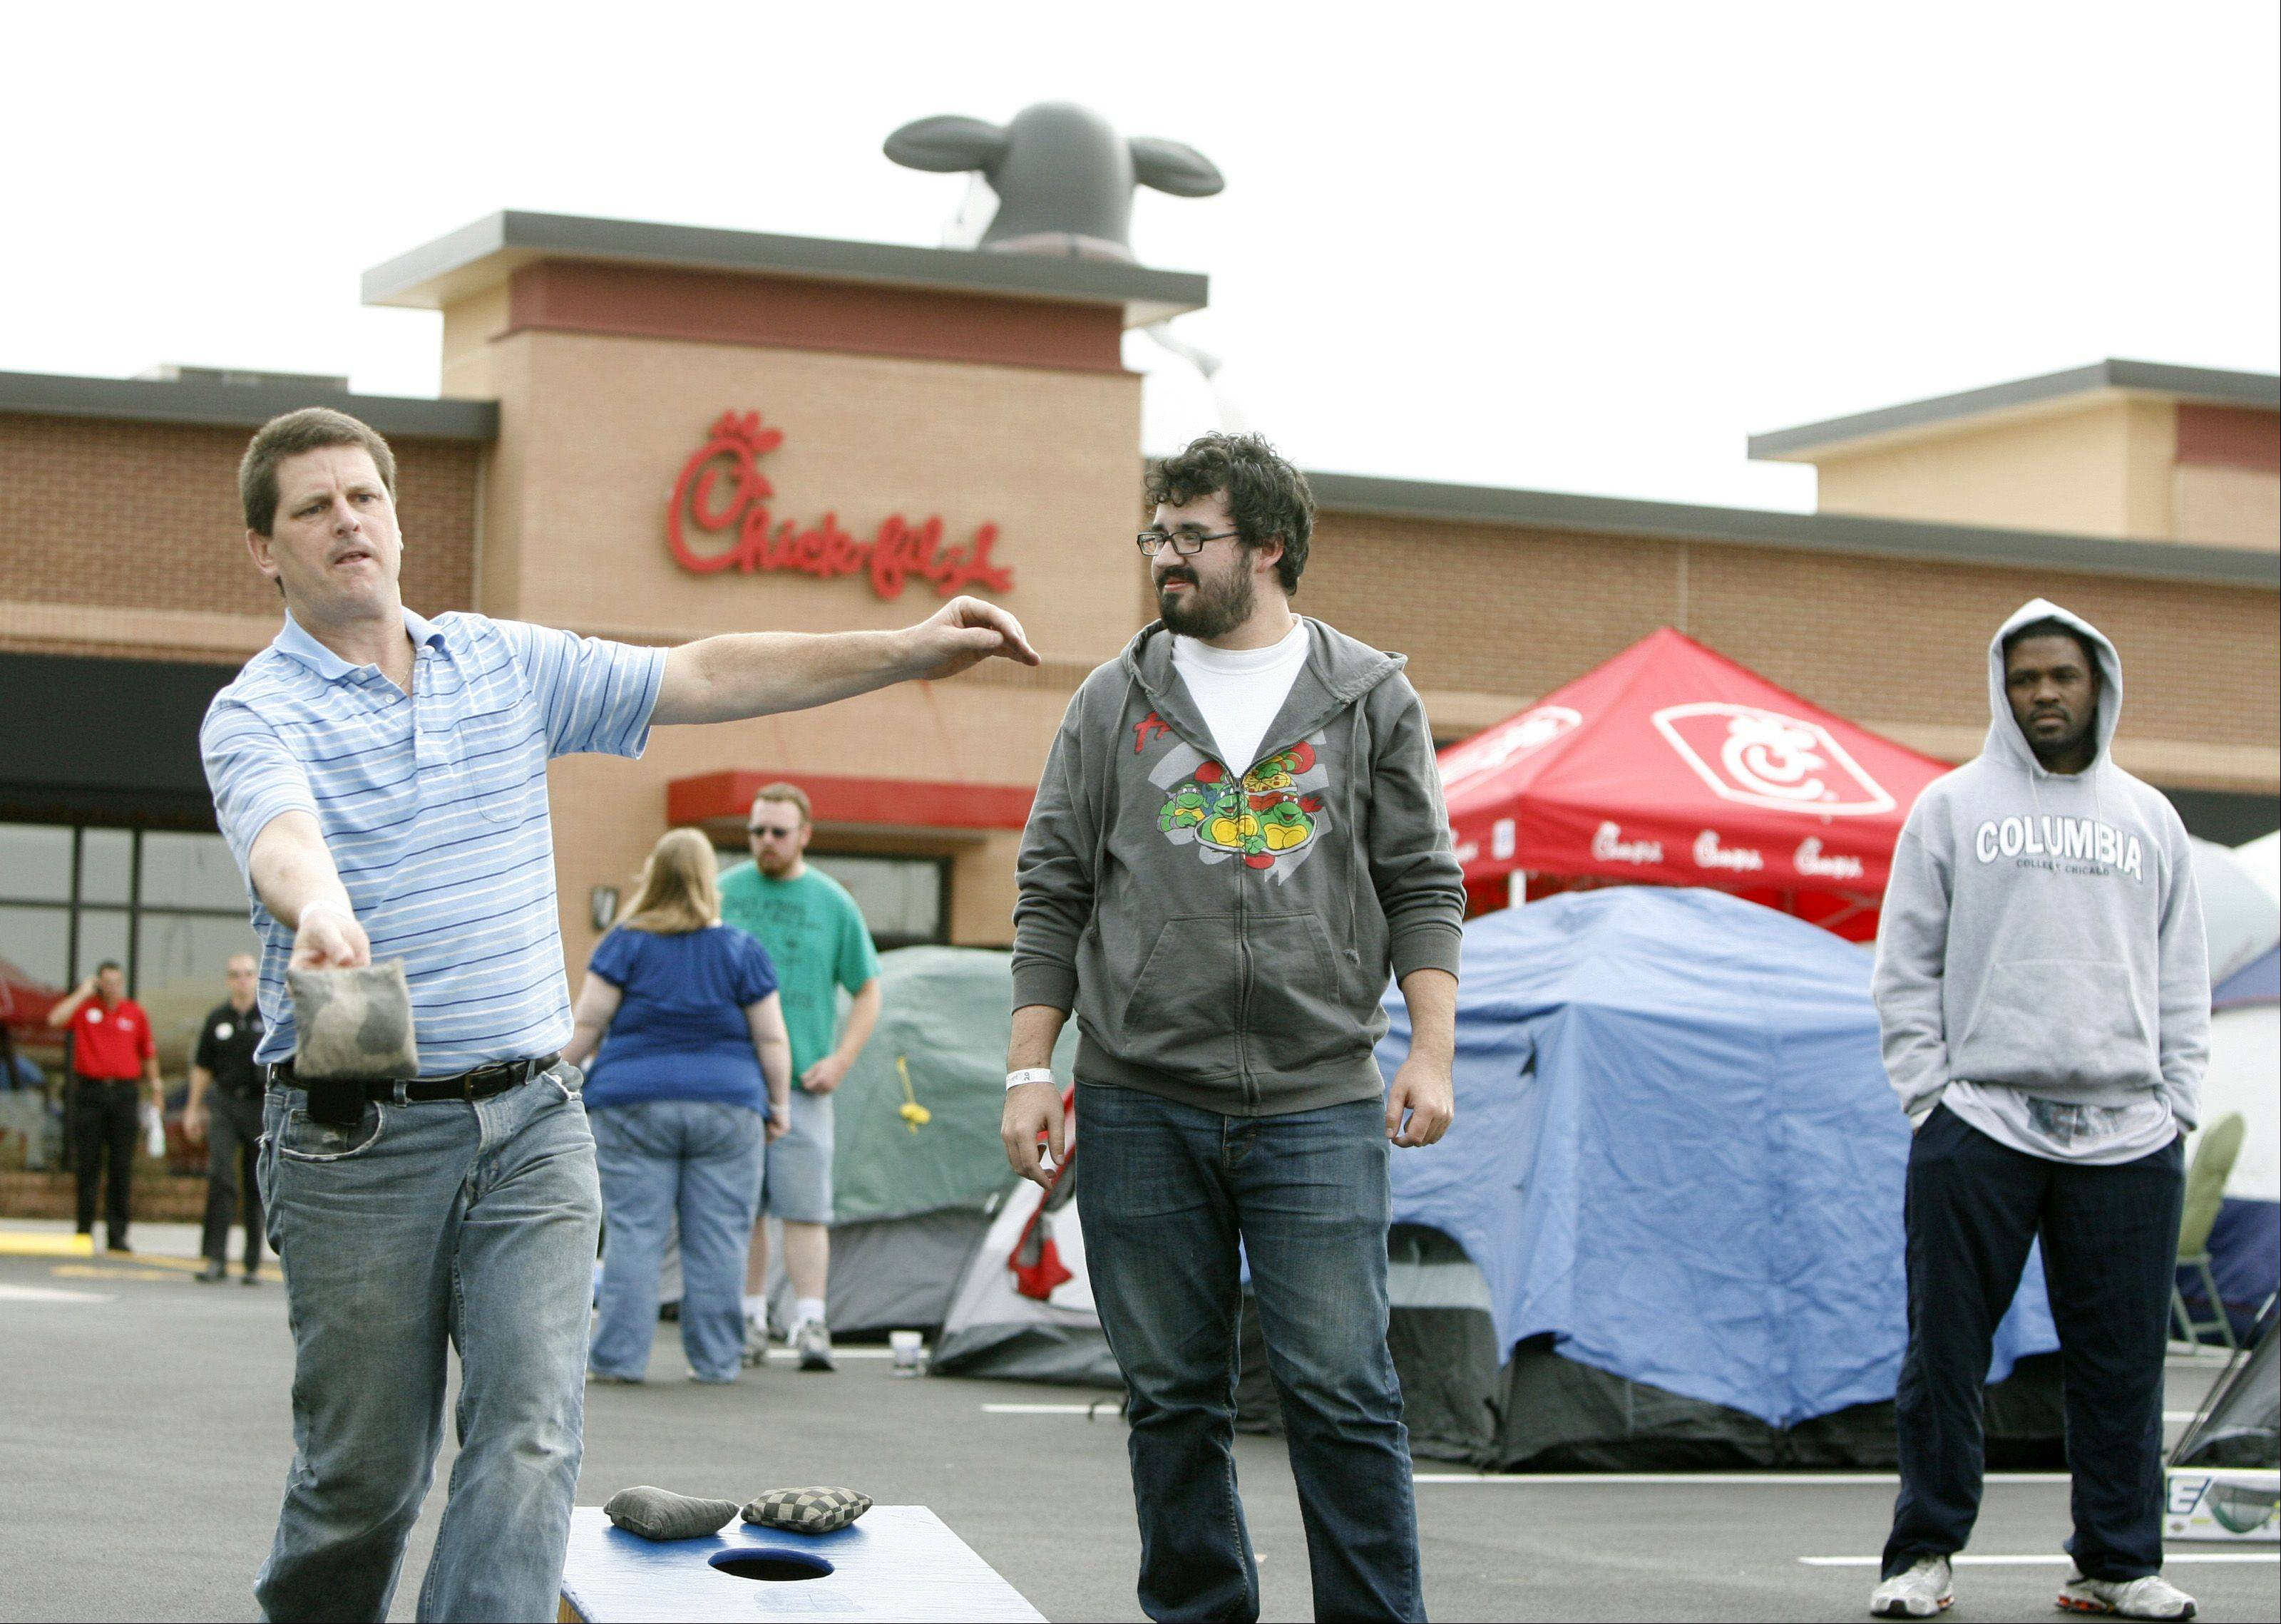 Crowds gathered outside the Chick-fil-A in September 2010 when the Aurora site became the first of the chain's restaurants to open in the Chicago area. The sixth area Chick-fil-A will open at 6:30 a.m. Thursday in Lombard.